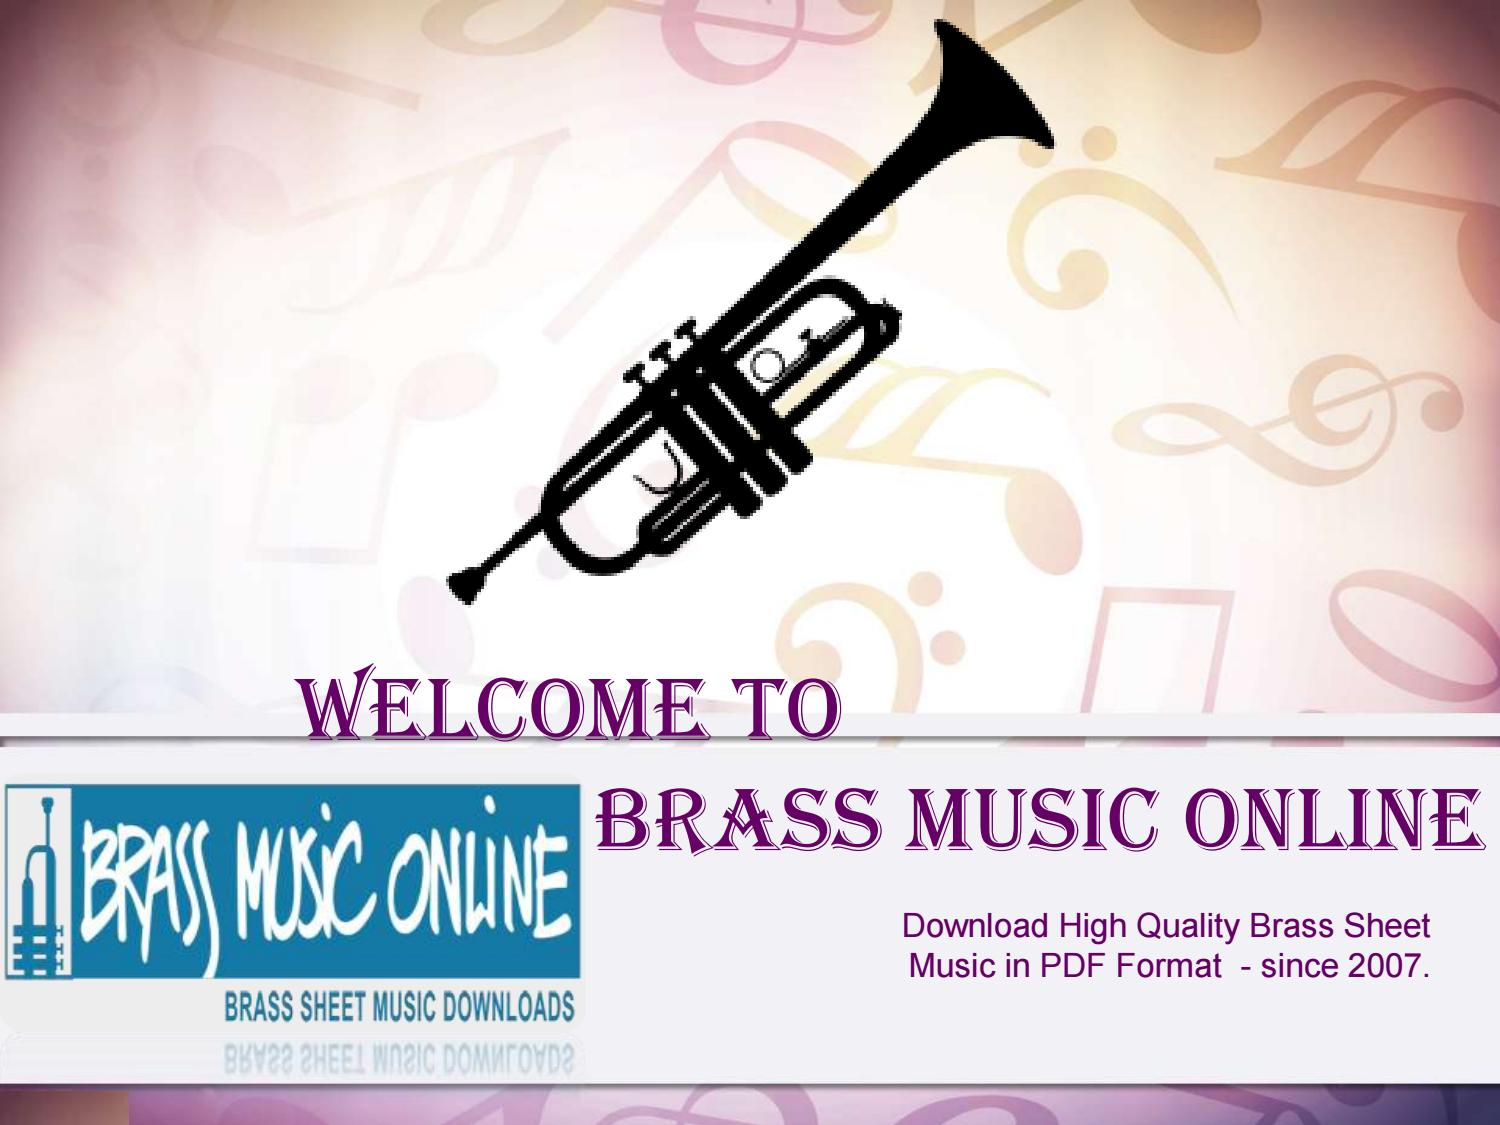 Sheet Music for Brass Band by brassmusiconline1 - issuu